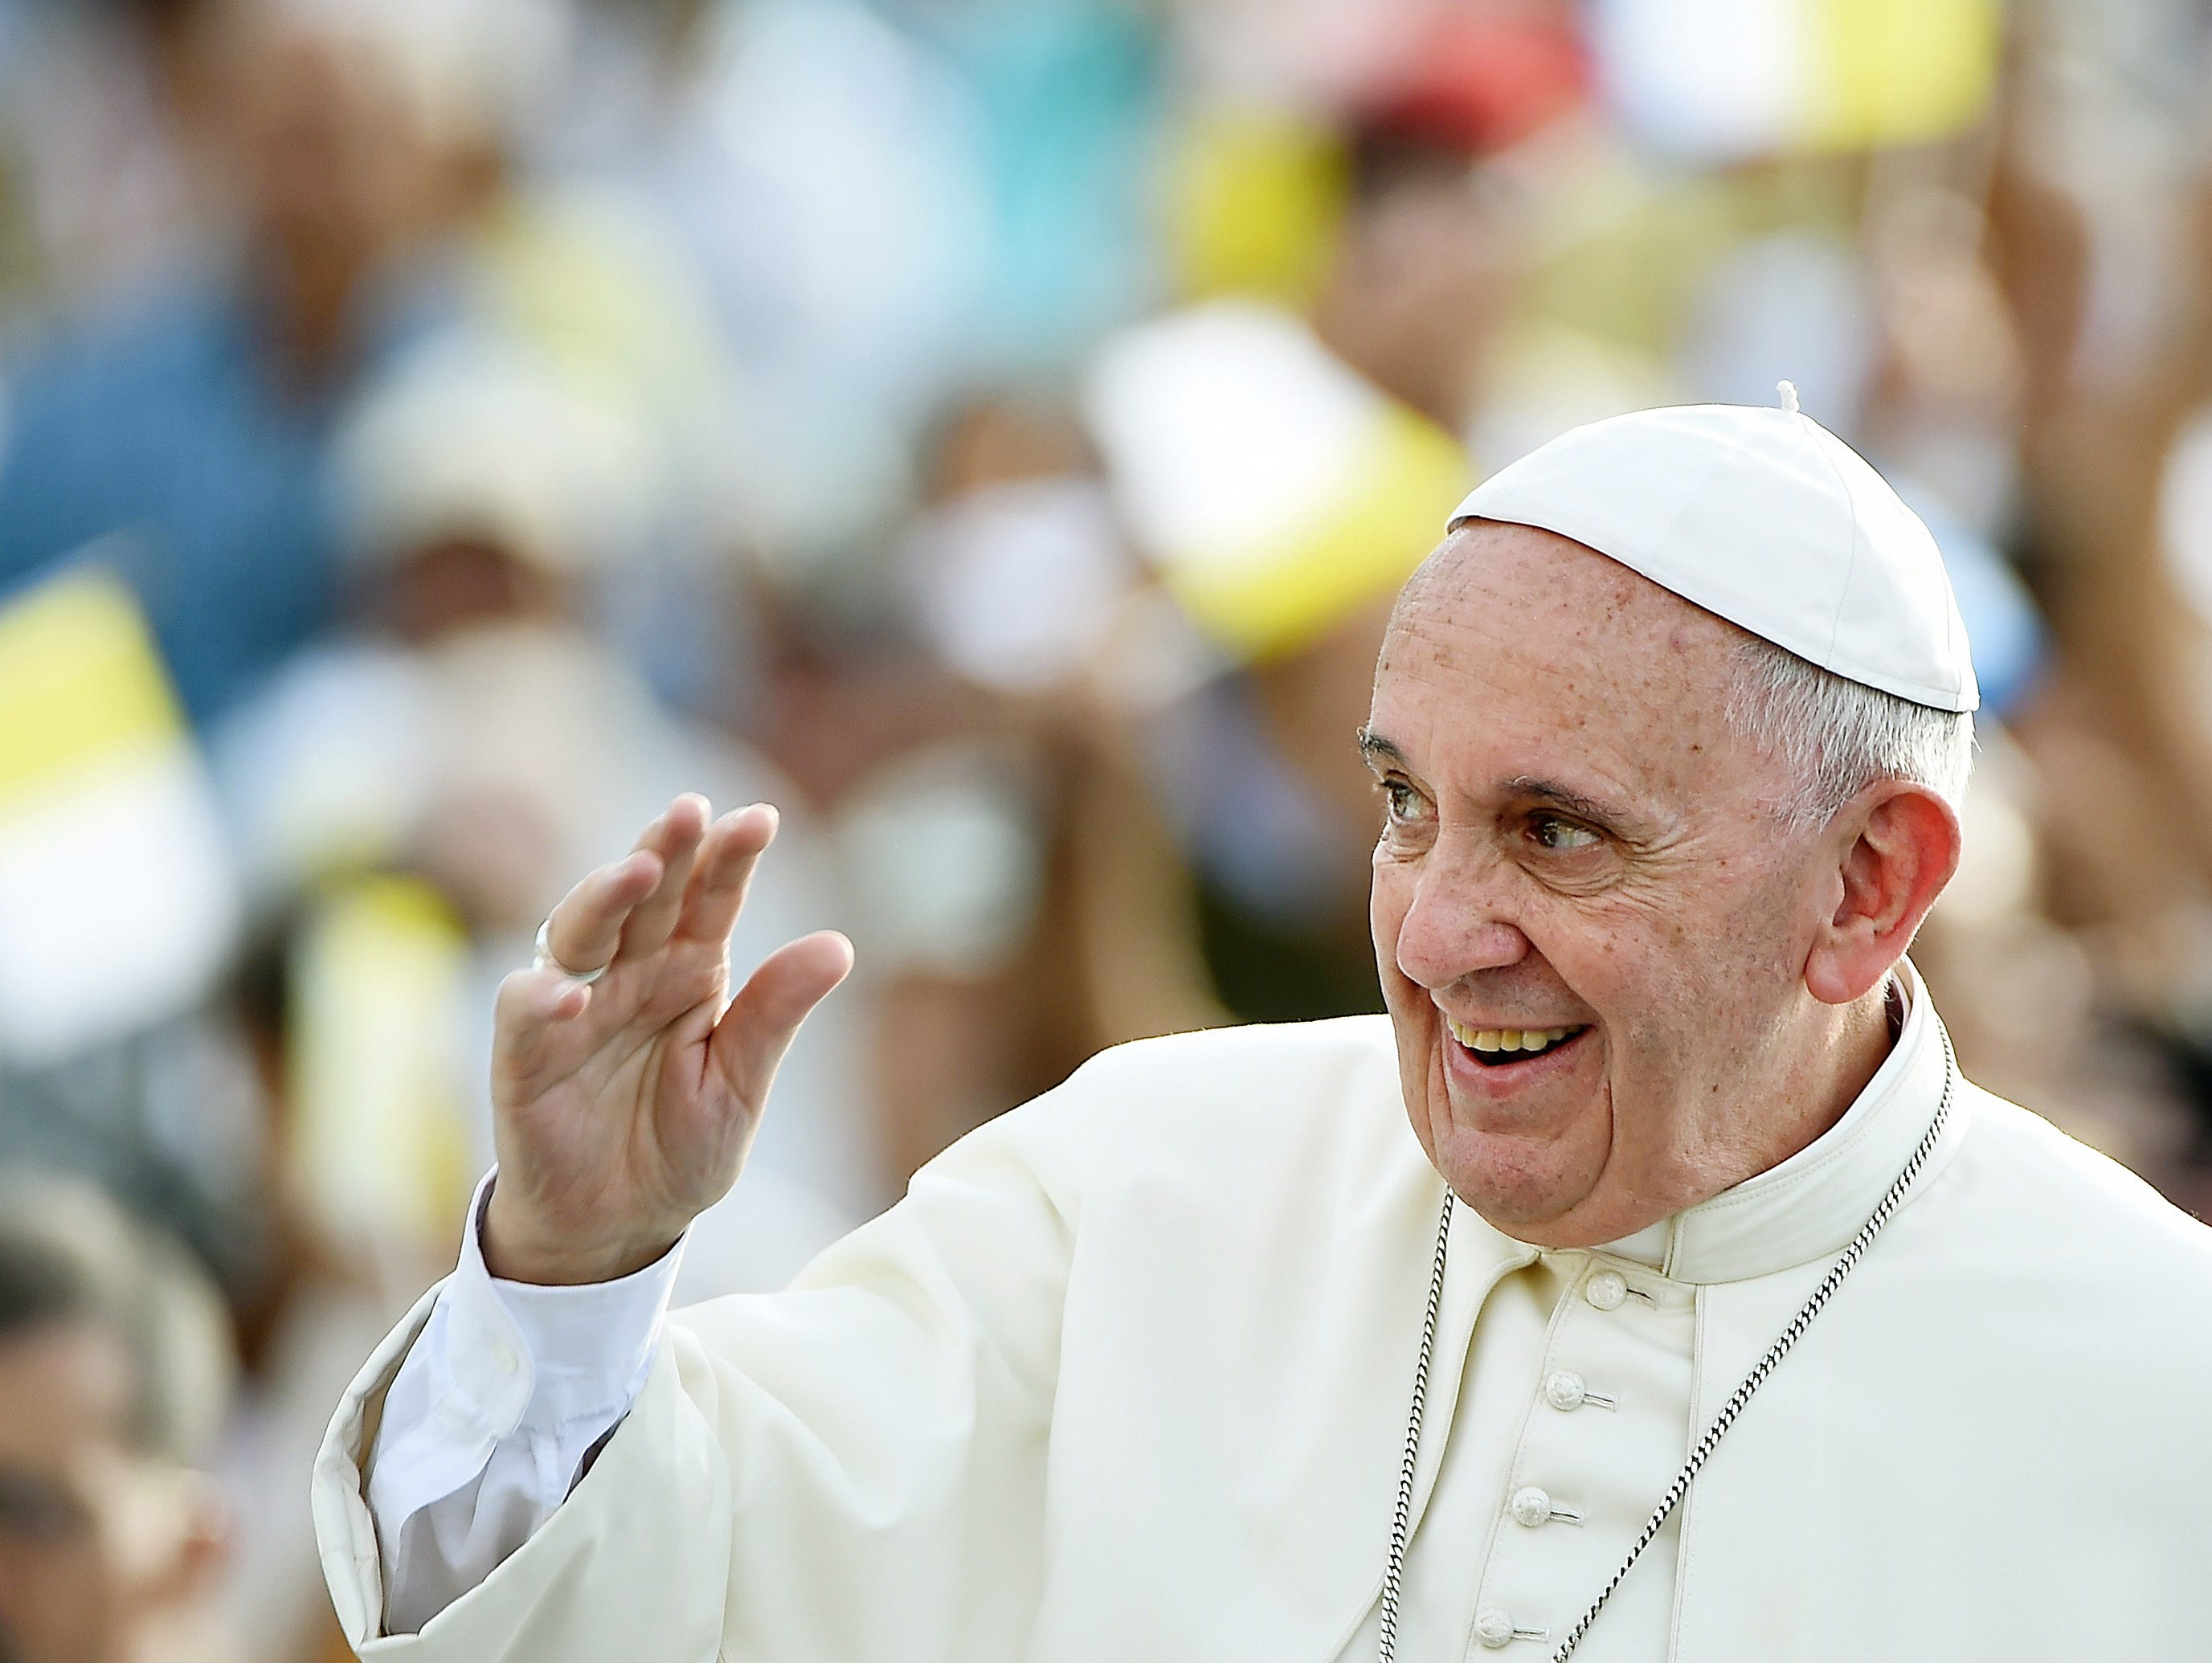 Pope Francis waves to the crowd upon his arrival in Santiago de Cuba. Santiago, the last stop on Pope Francis's Cuban tour, is known for its revolutionary history, its rum and the troubadours who have infused the Caribbean island's music with their t